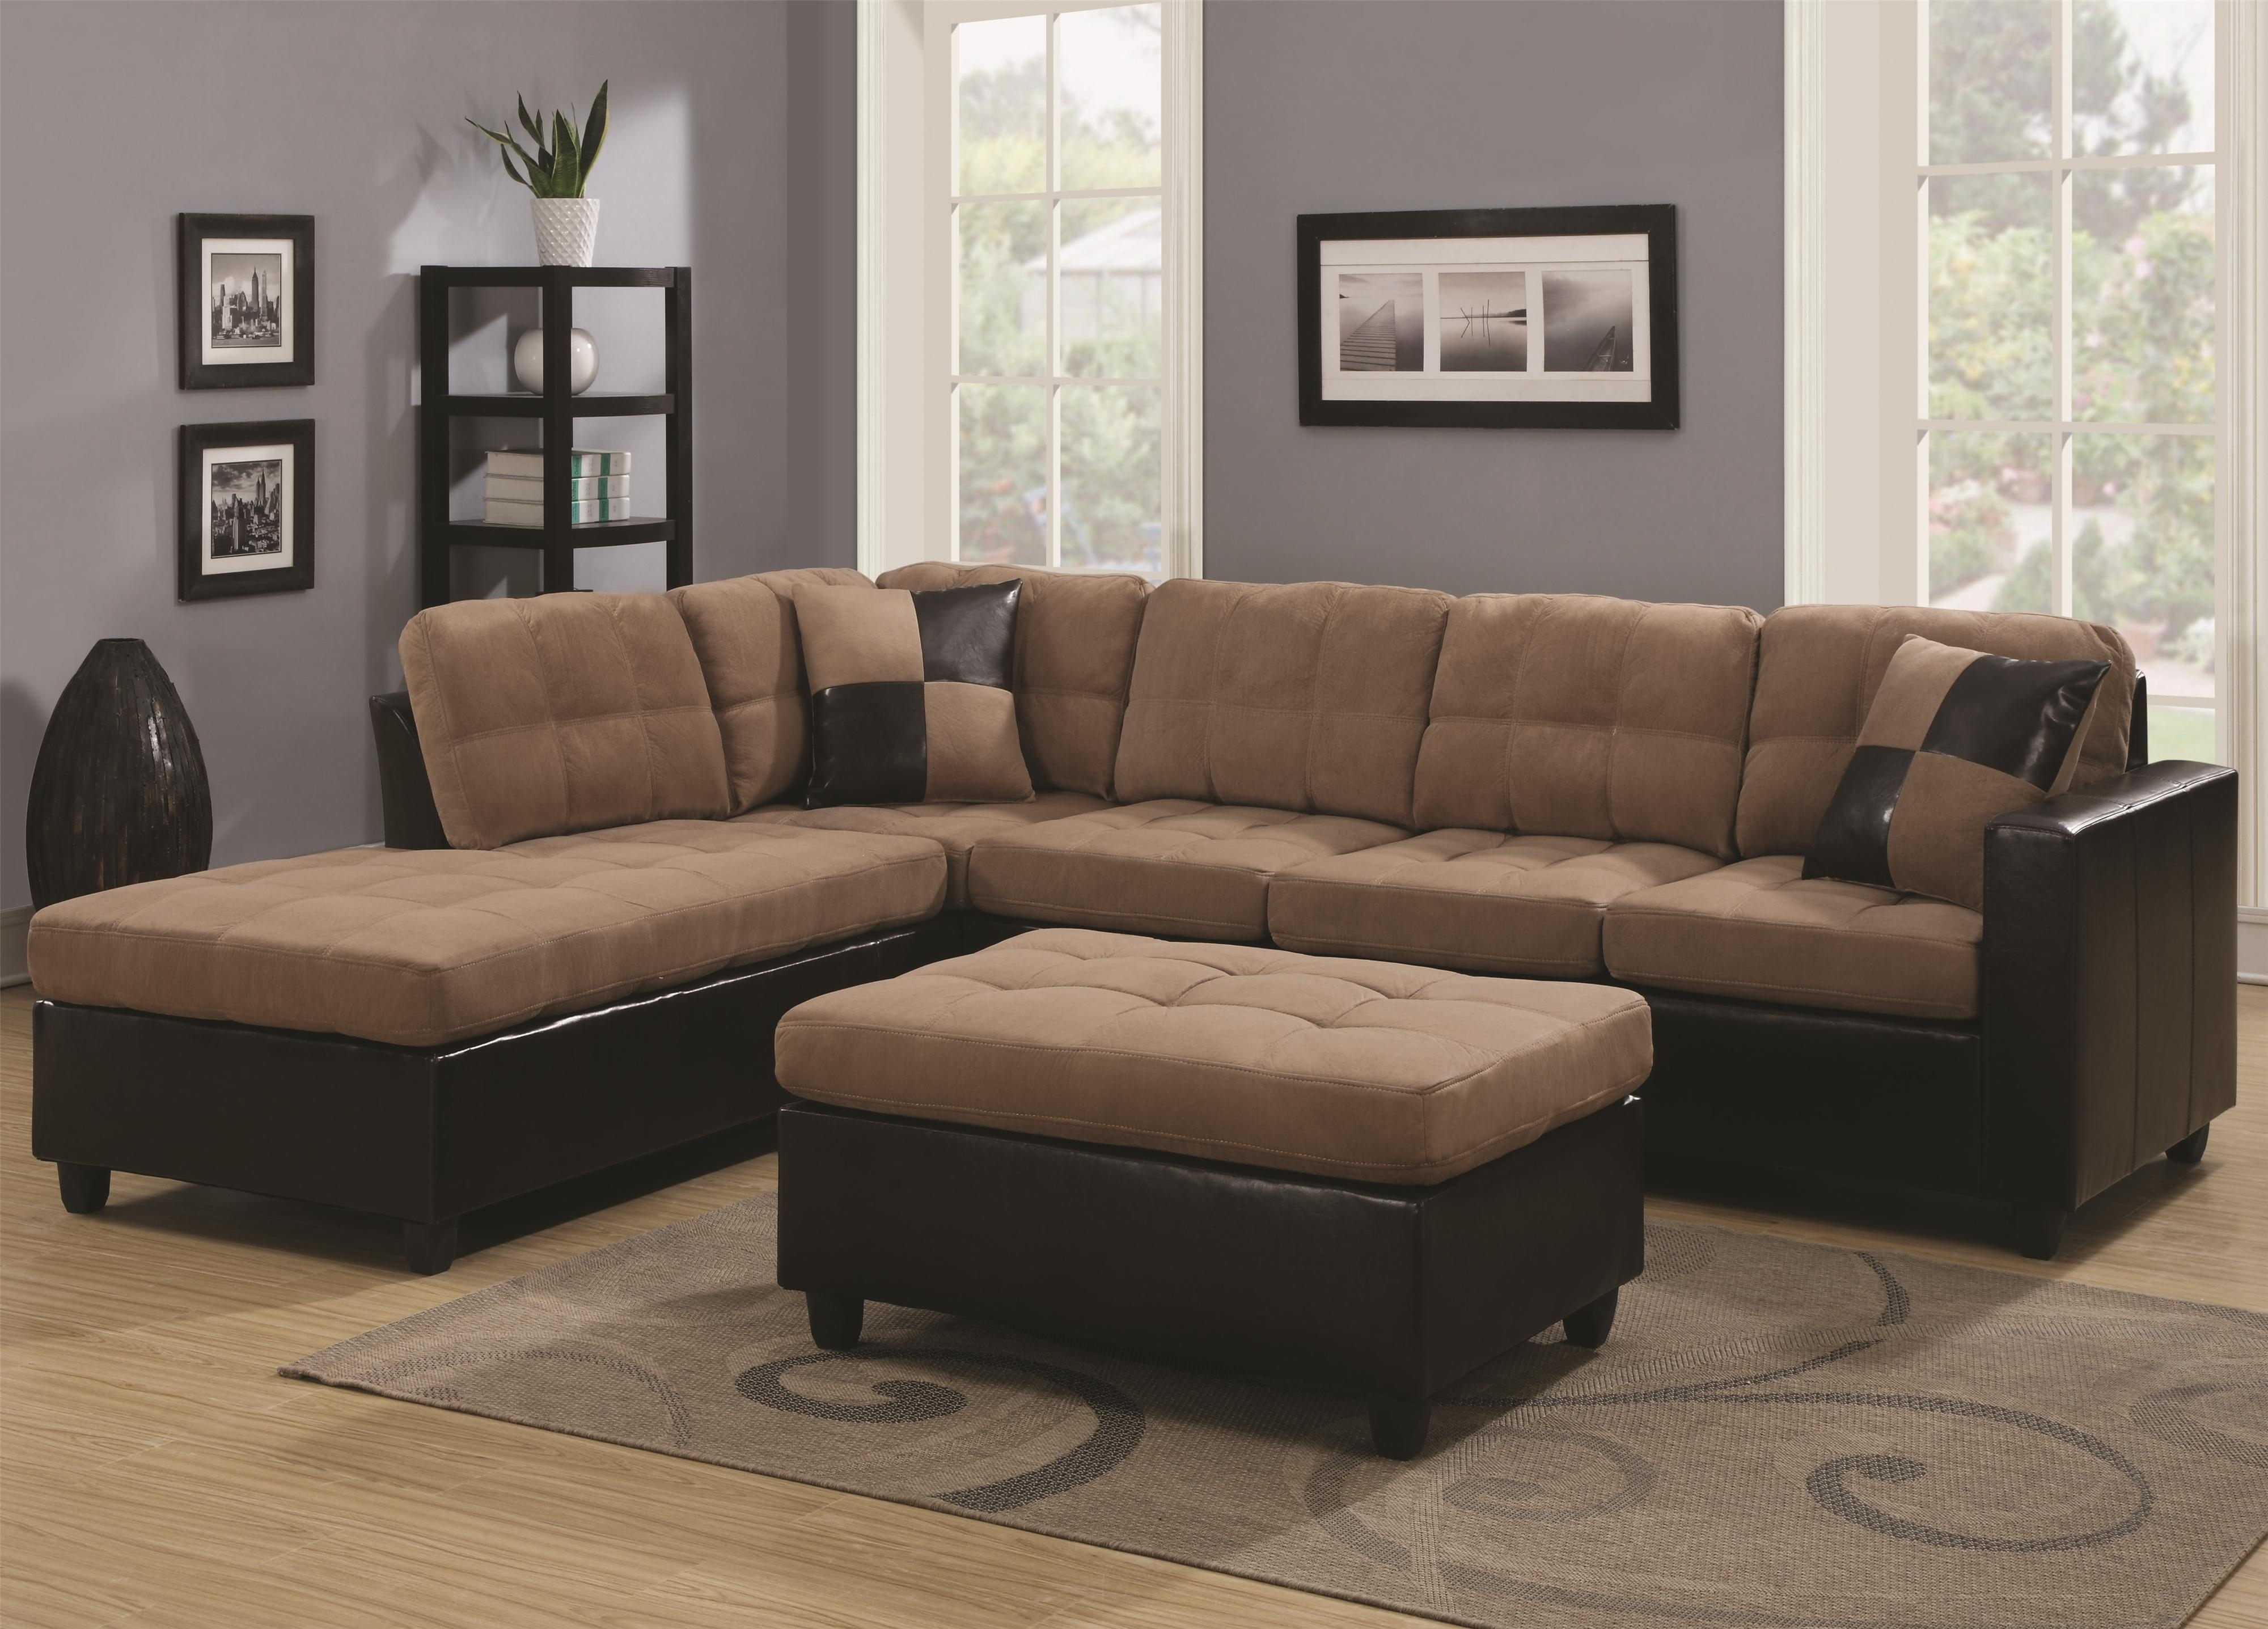 Sectional Sofas On Sale | Aifaresidency with Affordable Sectional Sofas (Image 12 of 15)